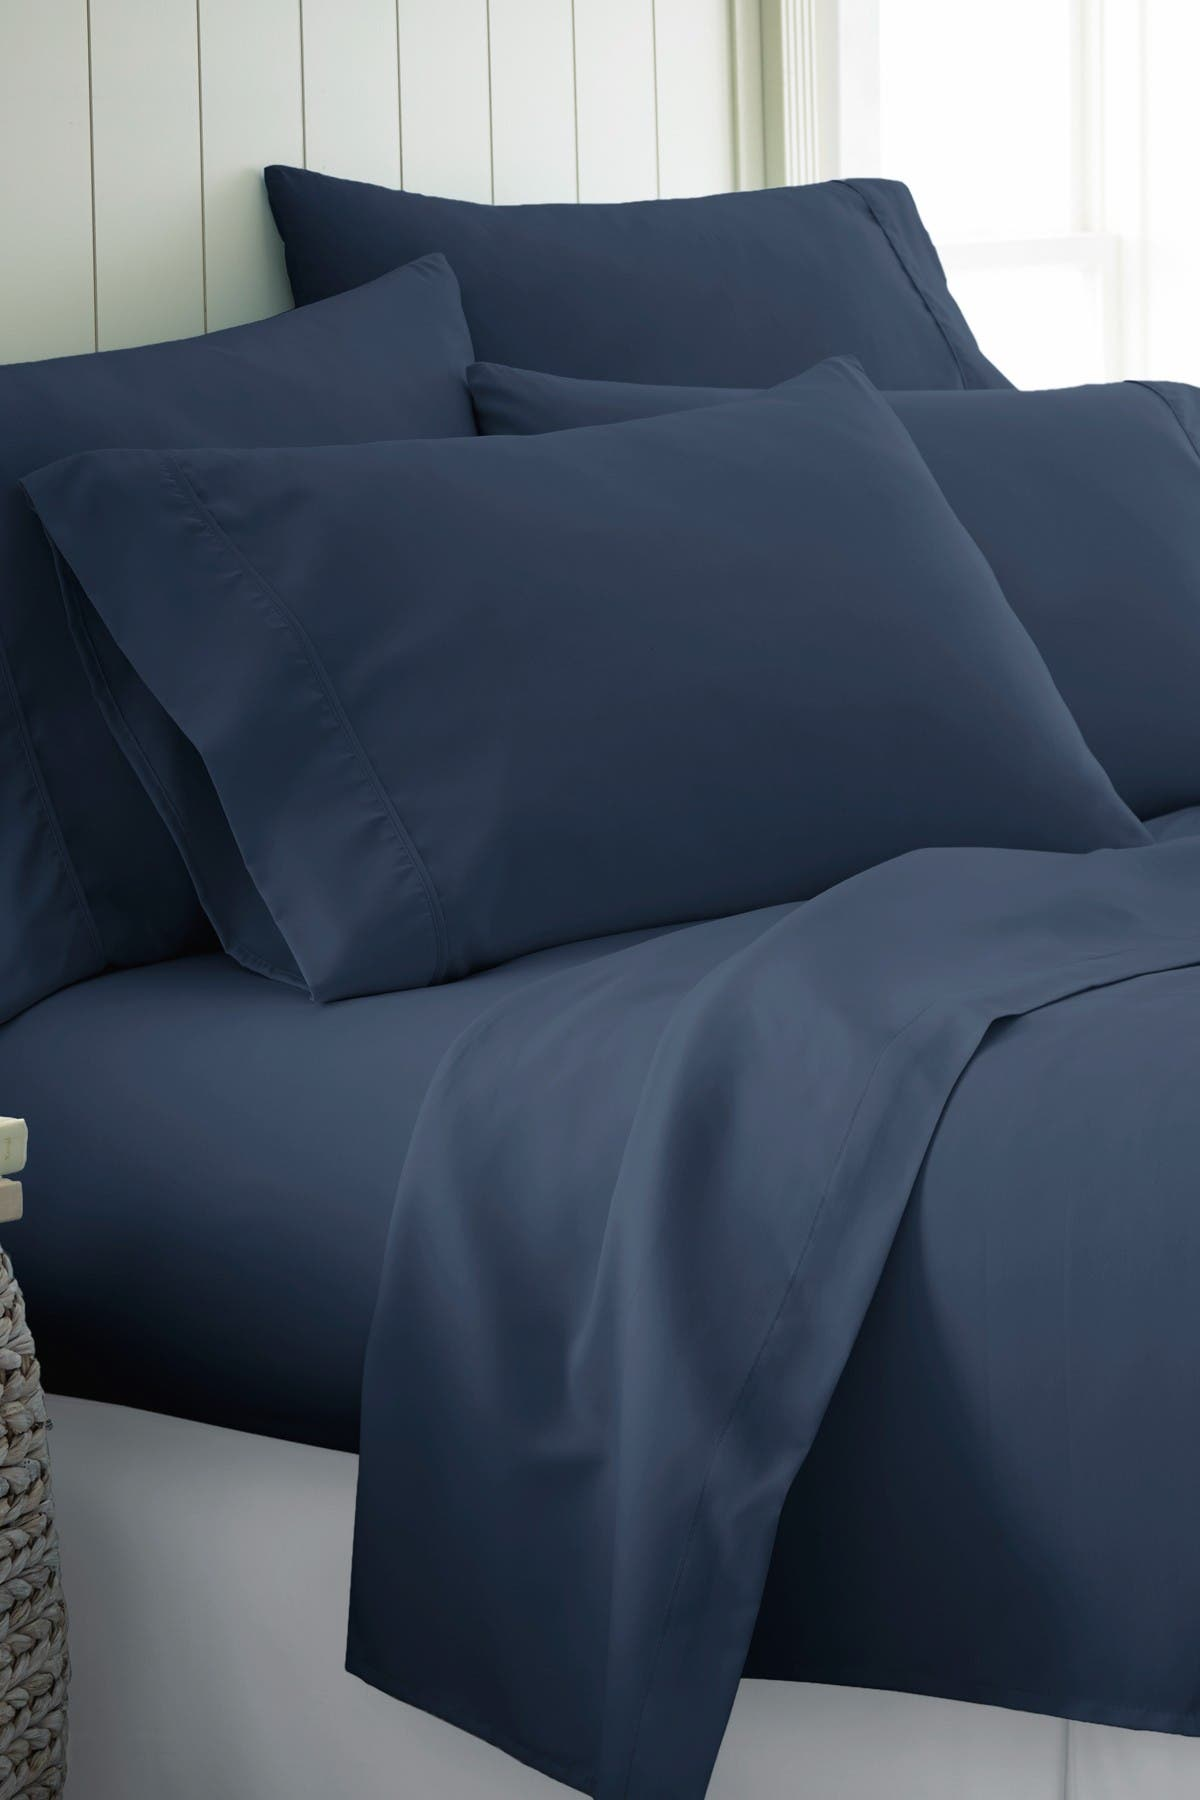 Image of IENJOY HOME Twin XL Hotel Collection Premium Ultra Soft 4-Piece Bed Sheet Set - Navy